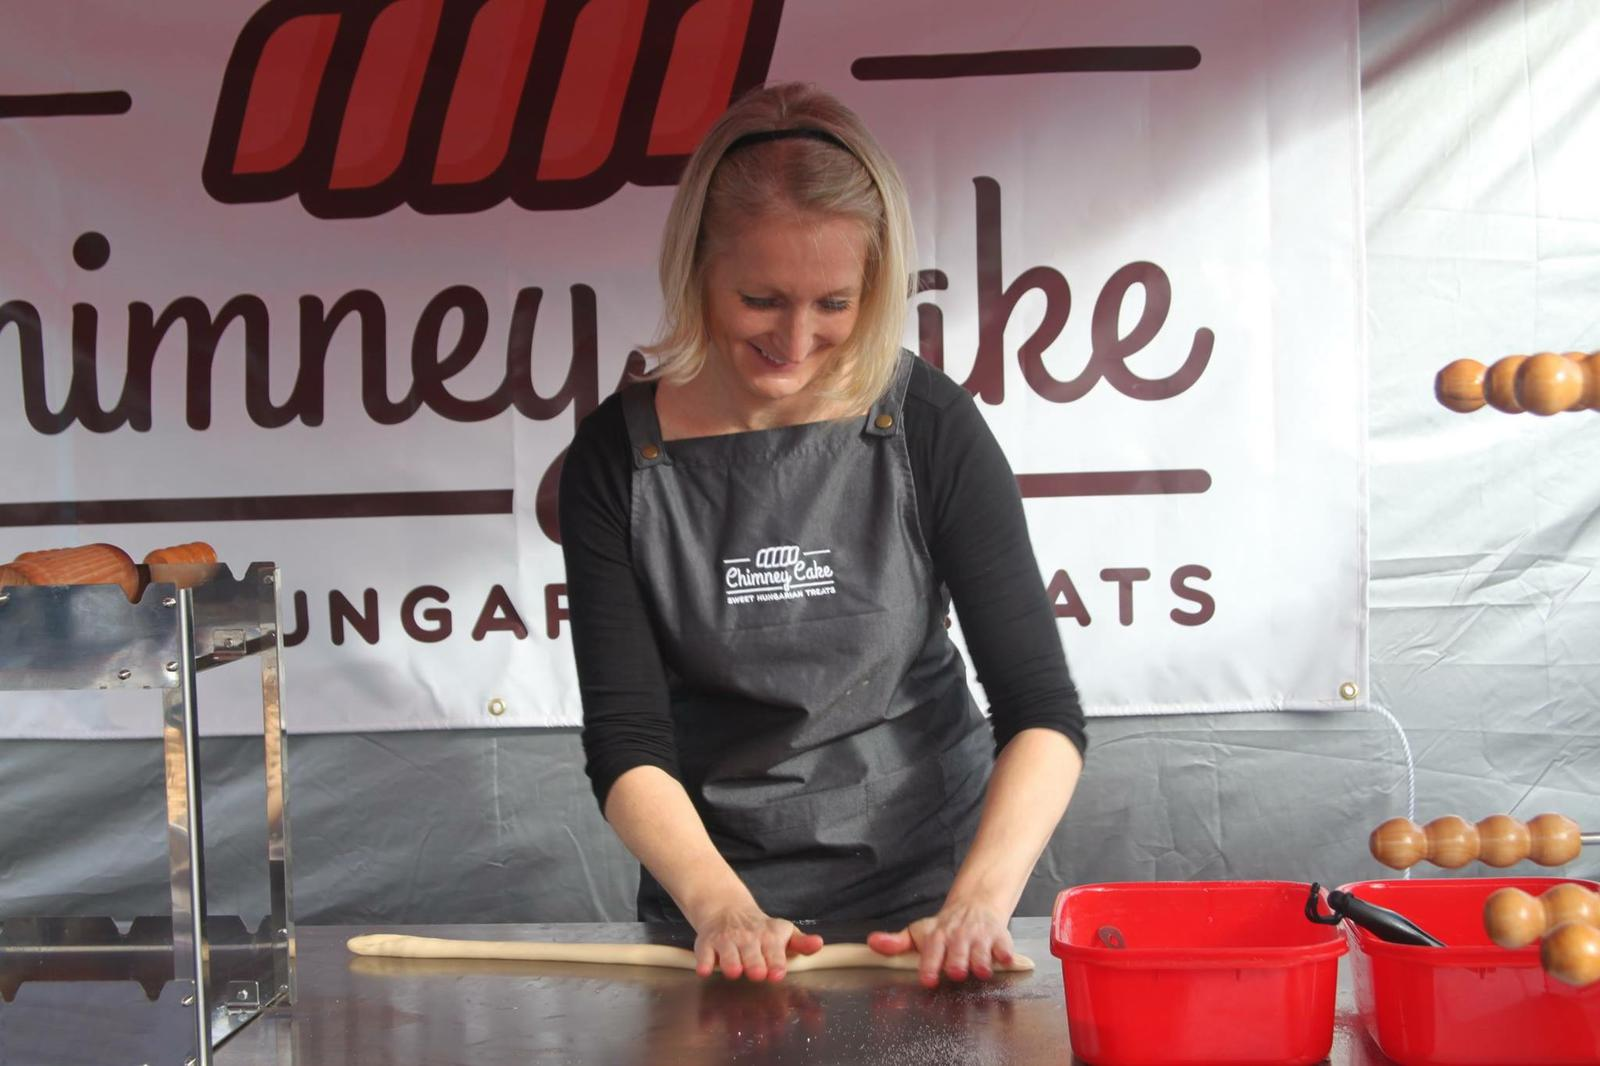 Chimney Cake Dough Rolling